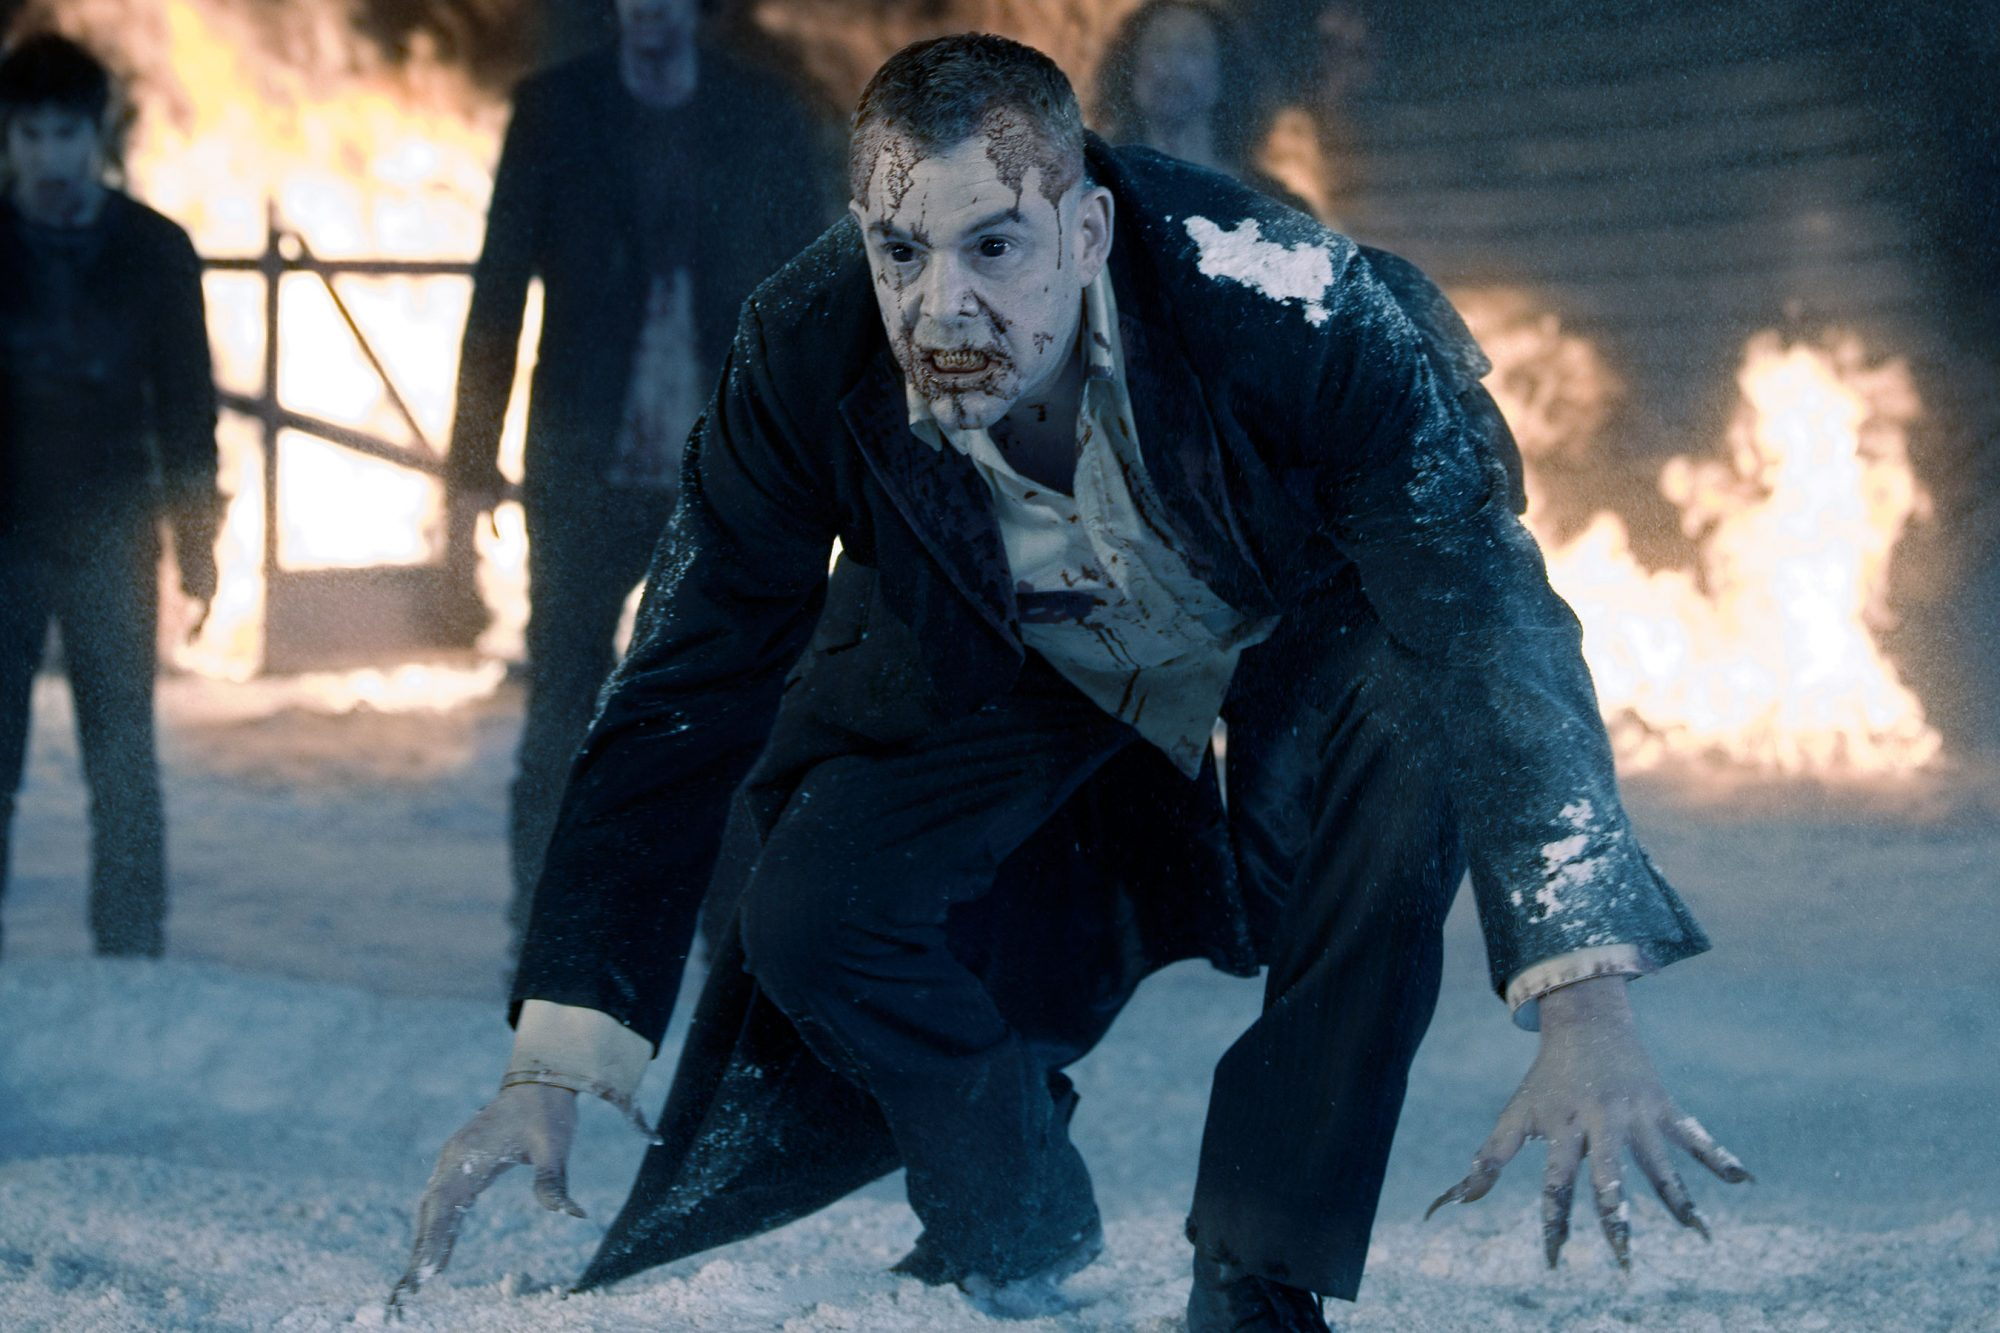 30 DAYS OF NIGHT (2007)Danny Huston